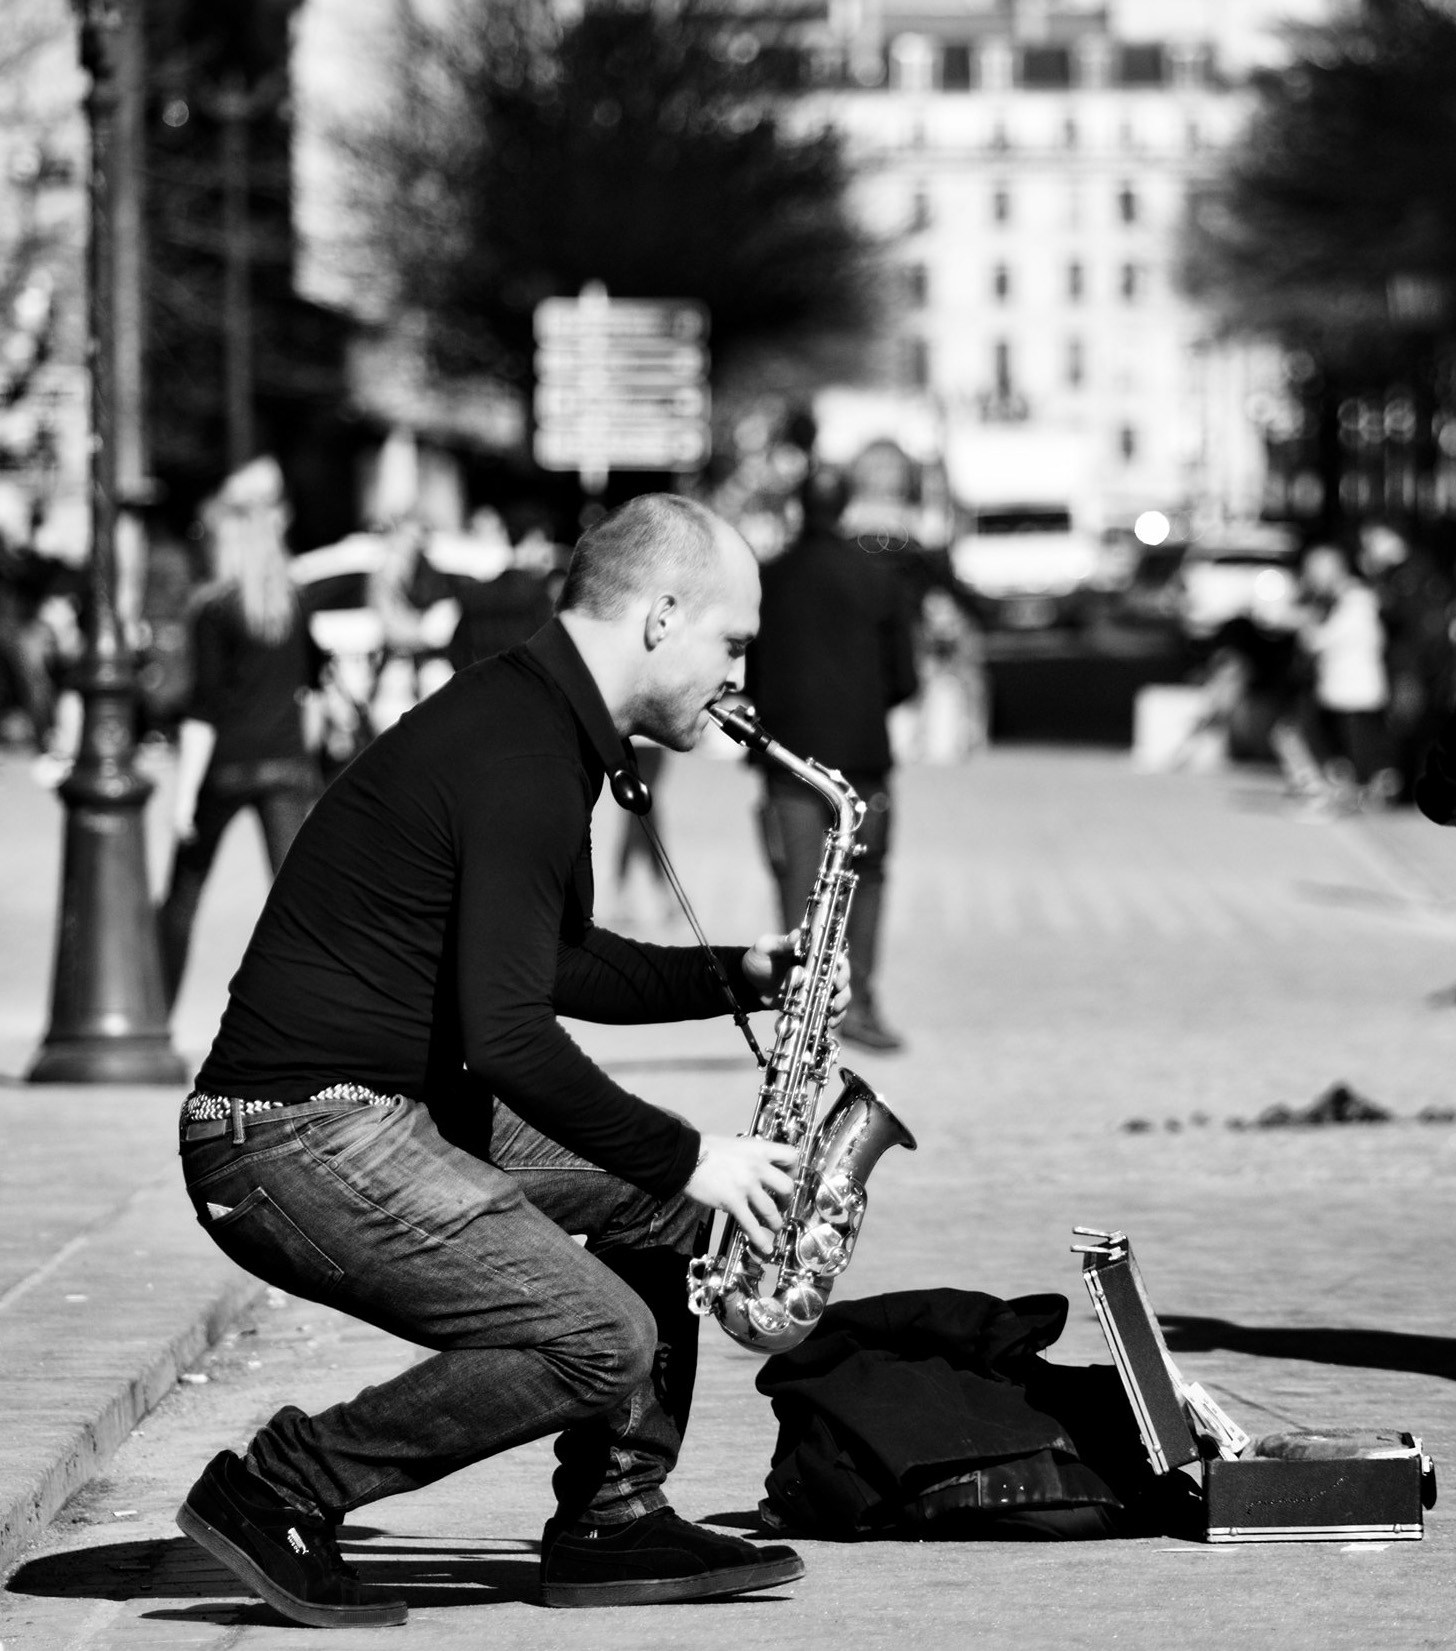 A man is seen squatting down while soulfully playing a saxophone on a city street. The photo is black and white.